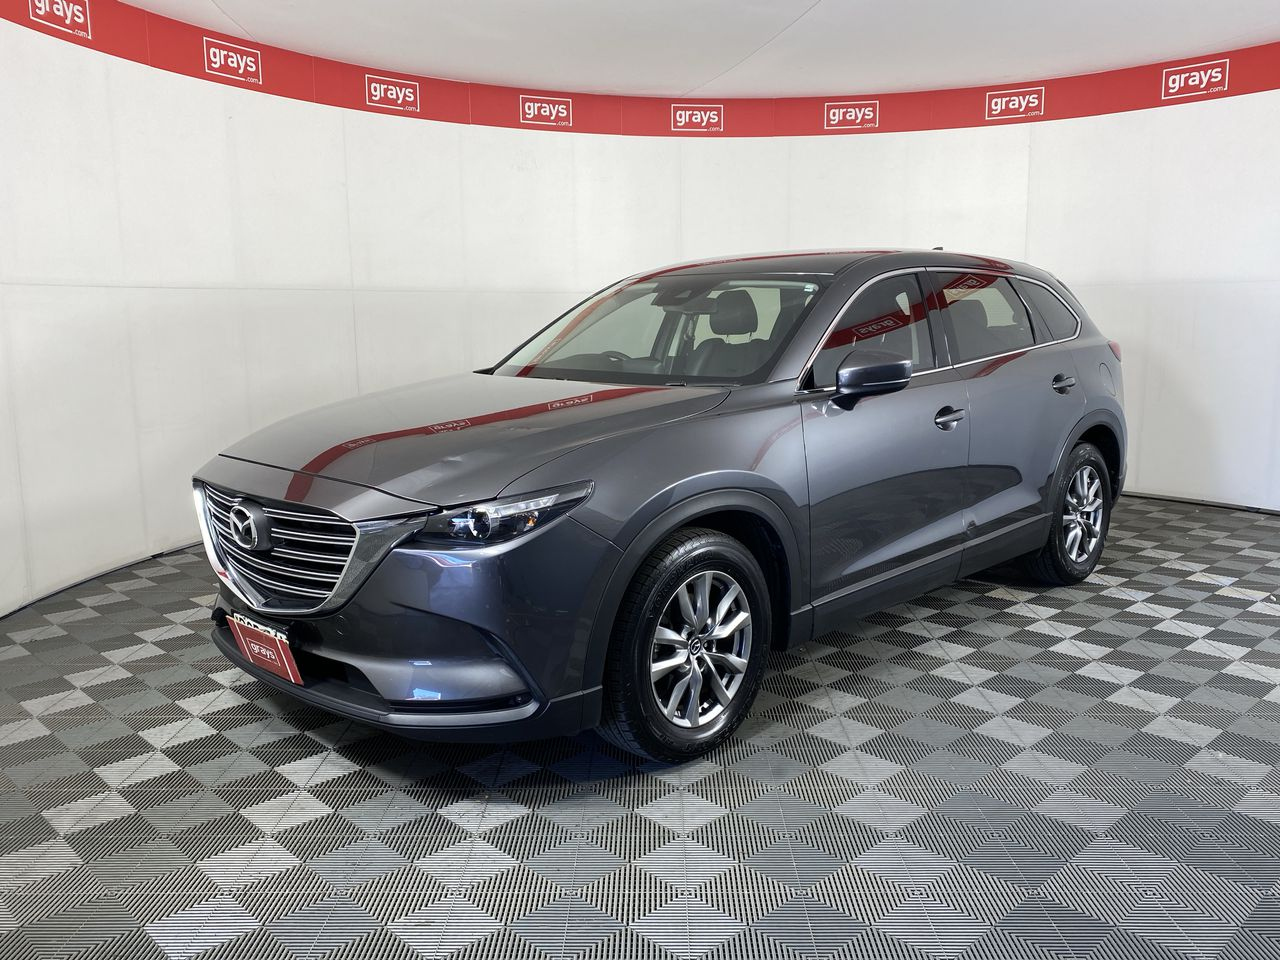 2017 Mazda CX-9 TOURING FWD TC Automatic 7 Seats Wagon